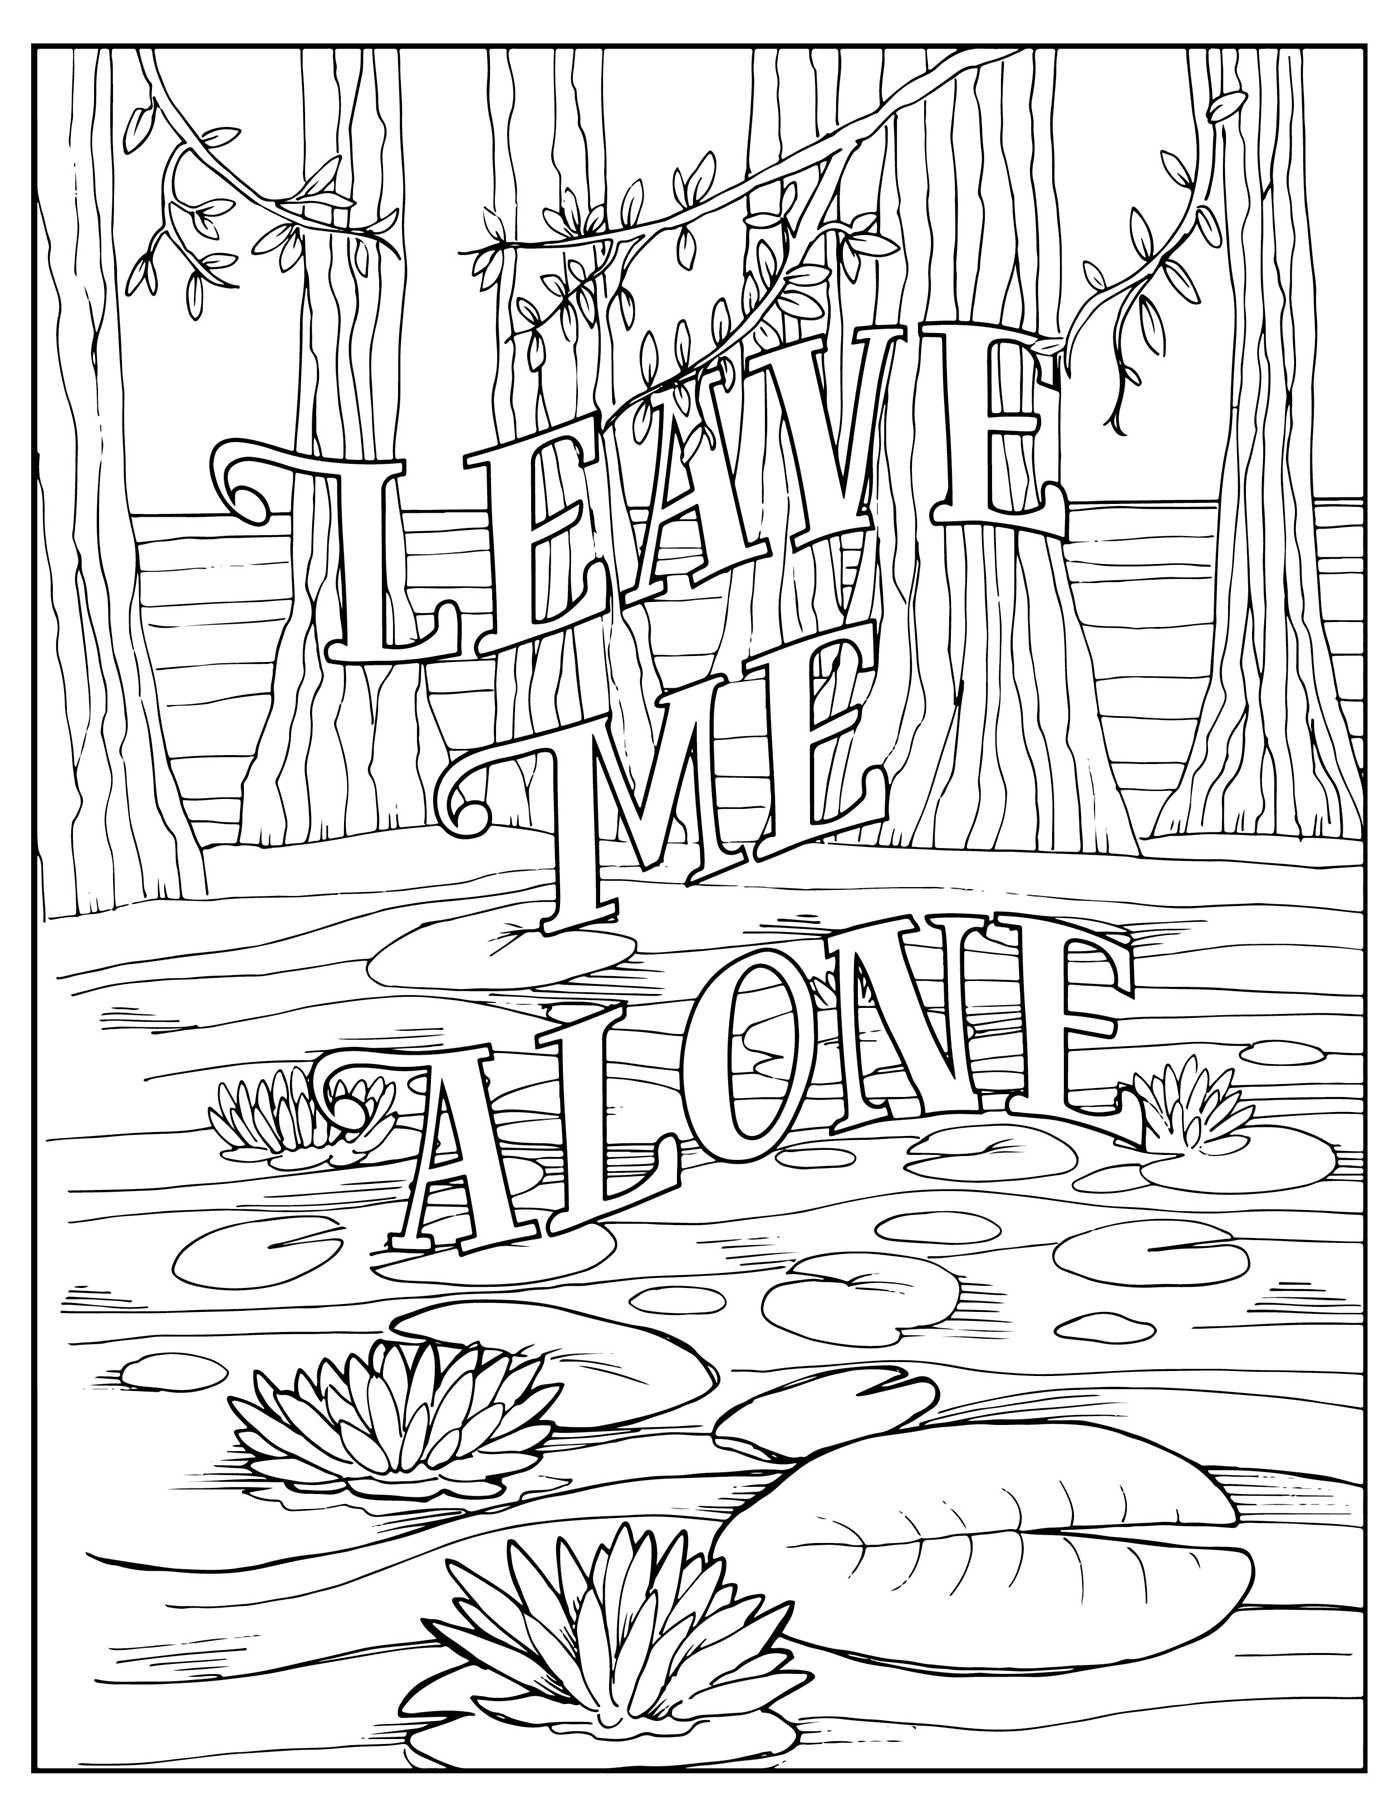 N words coloring pages - Fuck Off I M Coloring Unwind With 50 Obnoxiously Fun Swear Word Coloring Pages Dare You Stamp Company Dare You Stamp Co 9781604336610 Amazon Com